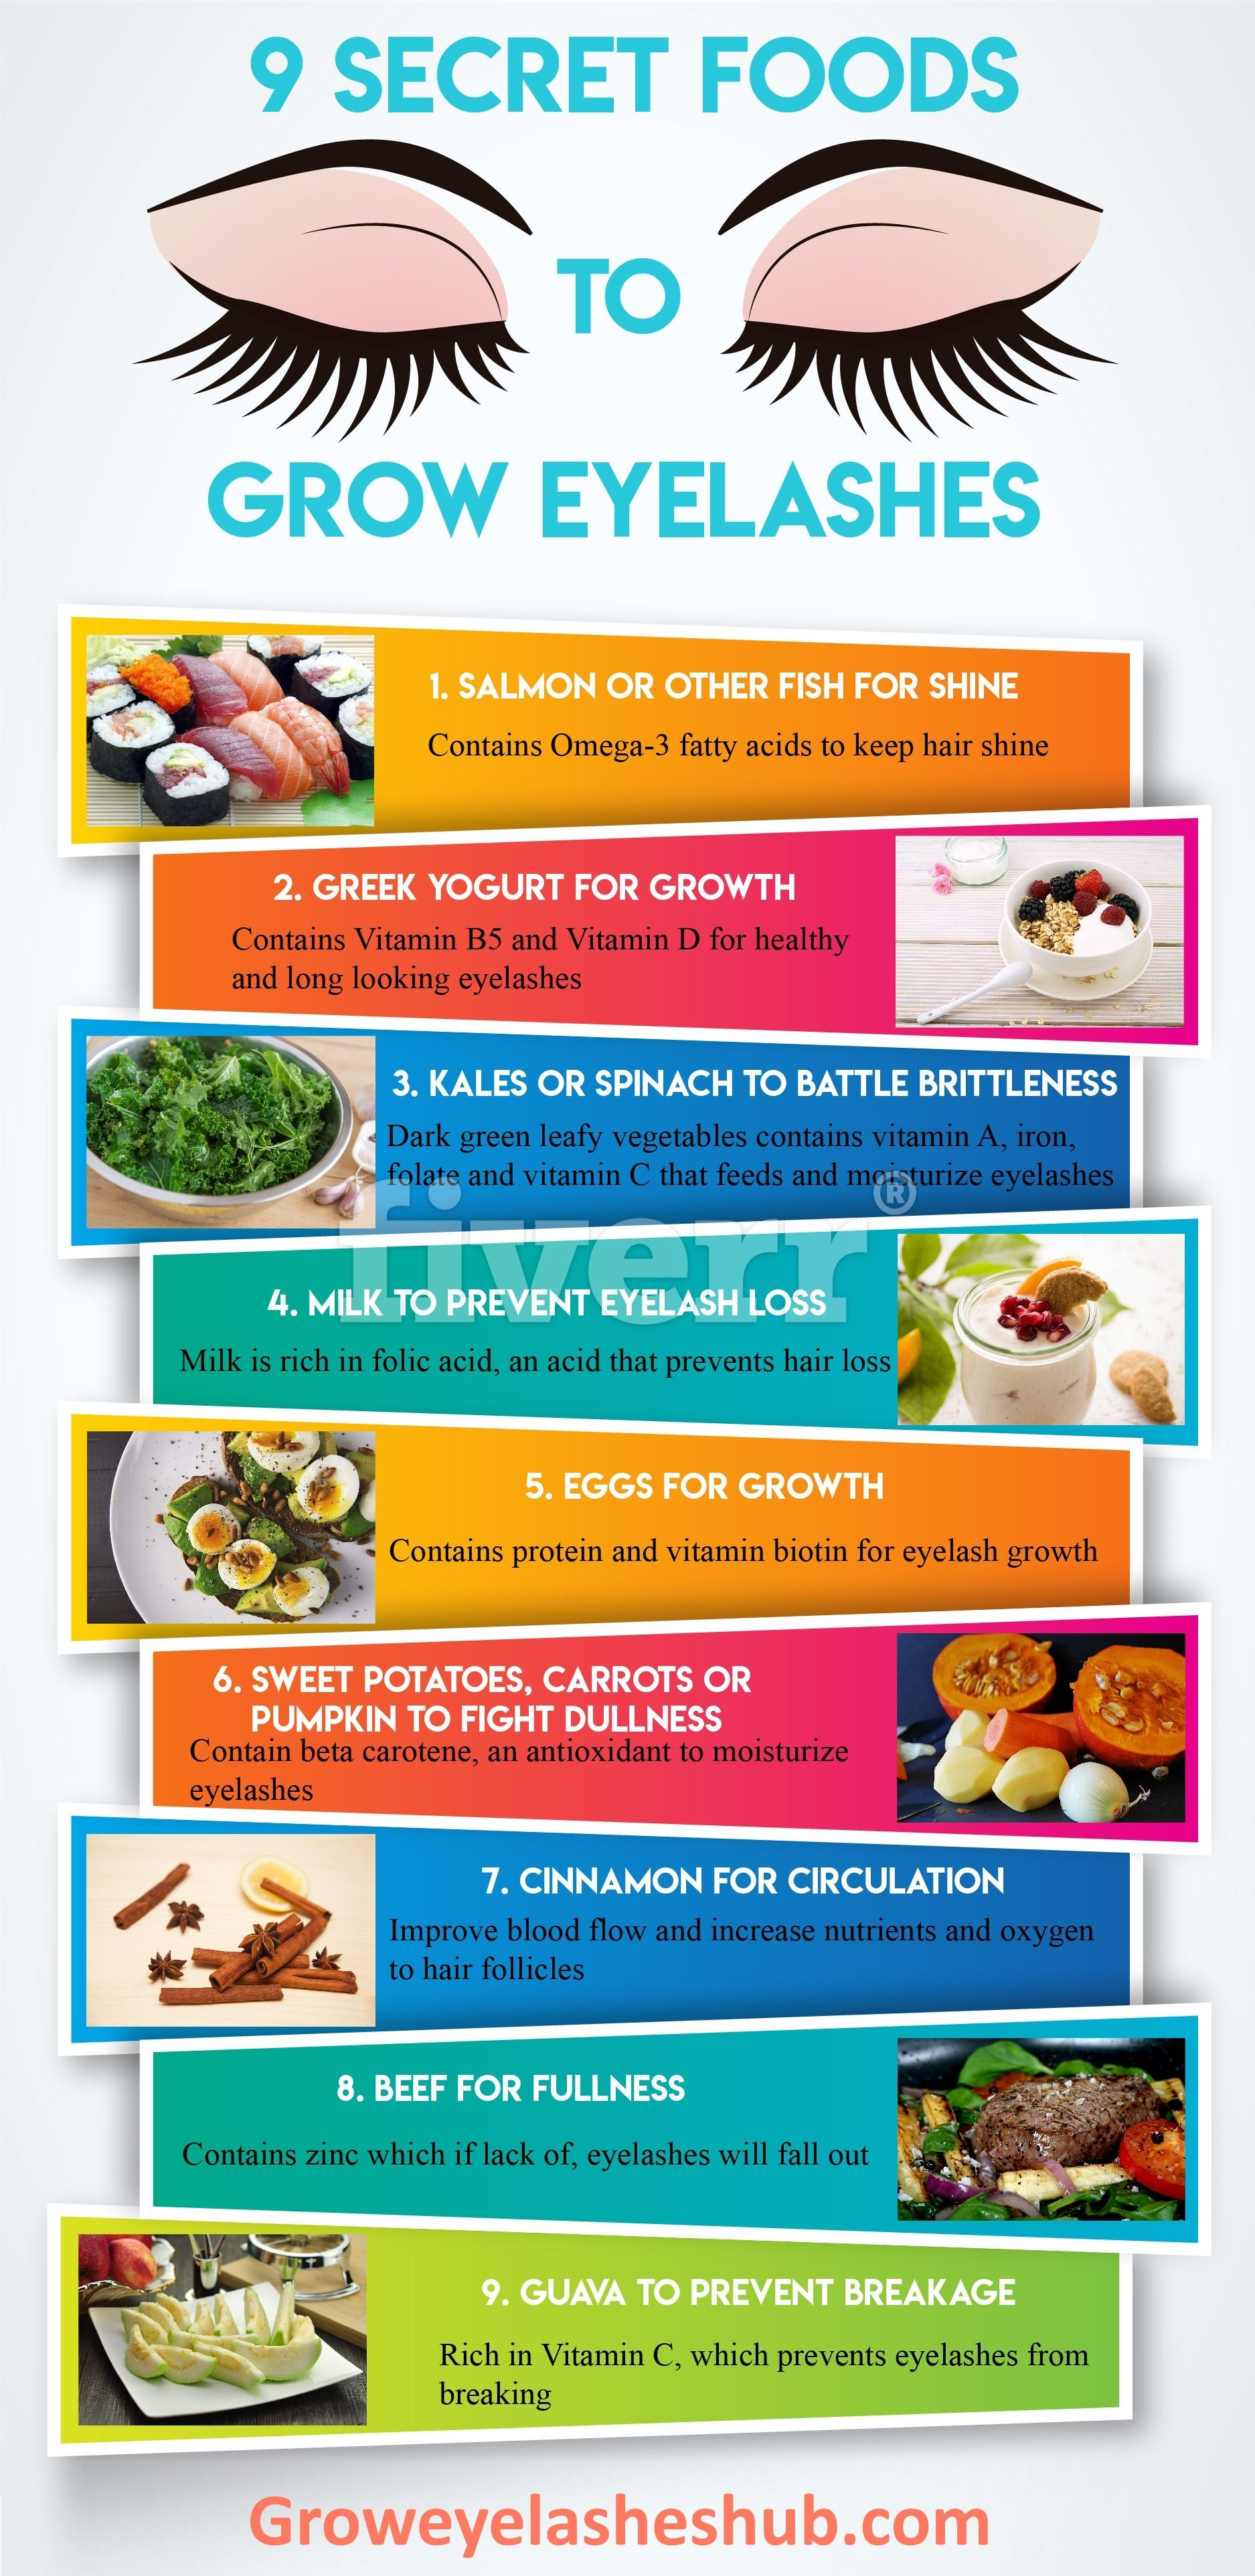 b258b00f27f There are many ways to boost your eyelash growth and eating healthy is one  of them, if not the most important one. Having a balanced diet, rich in  protein ...